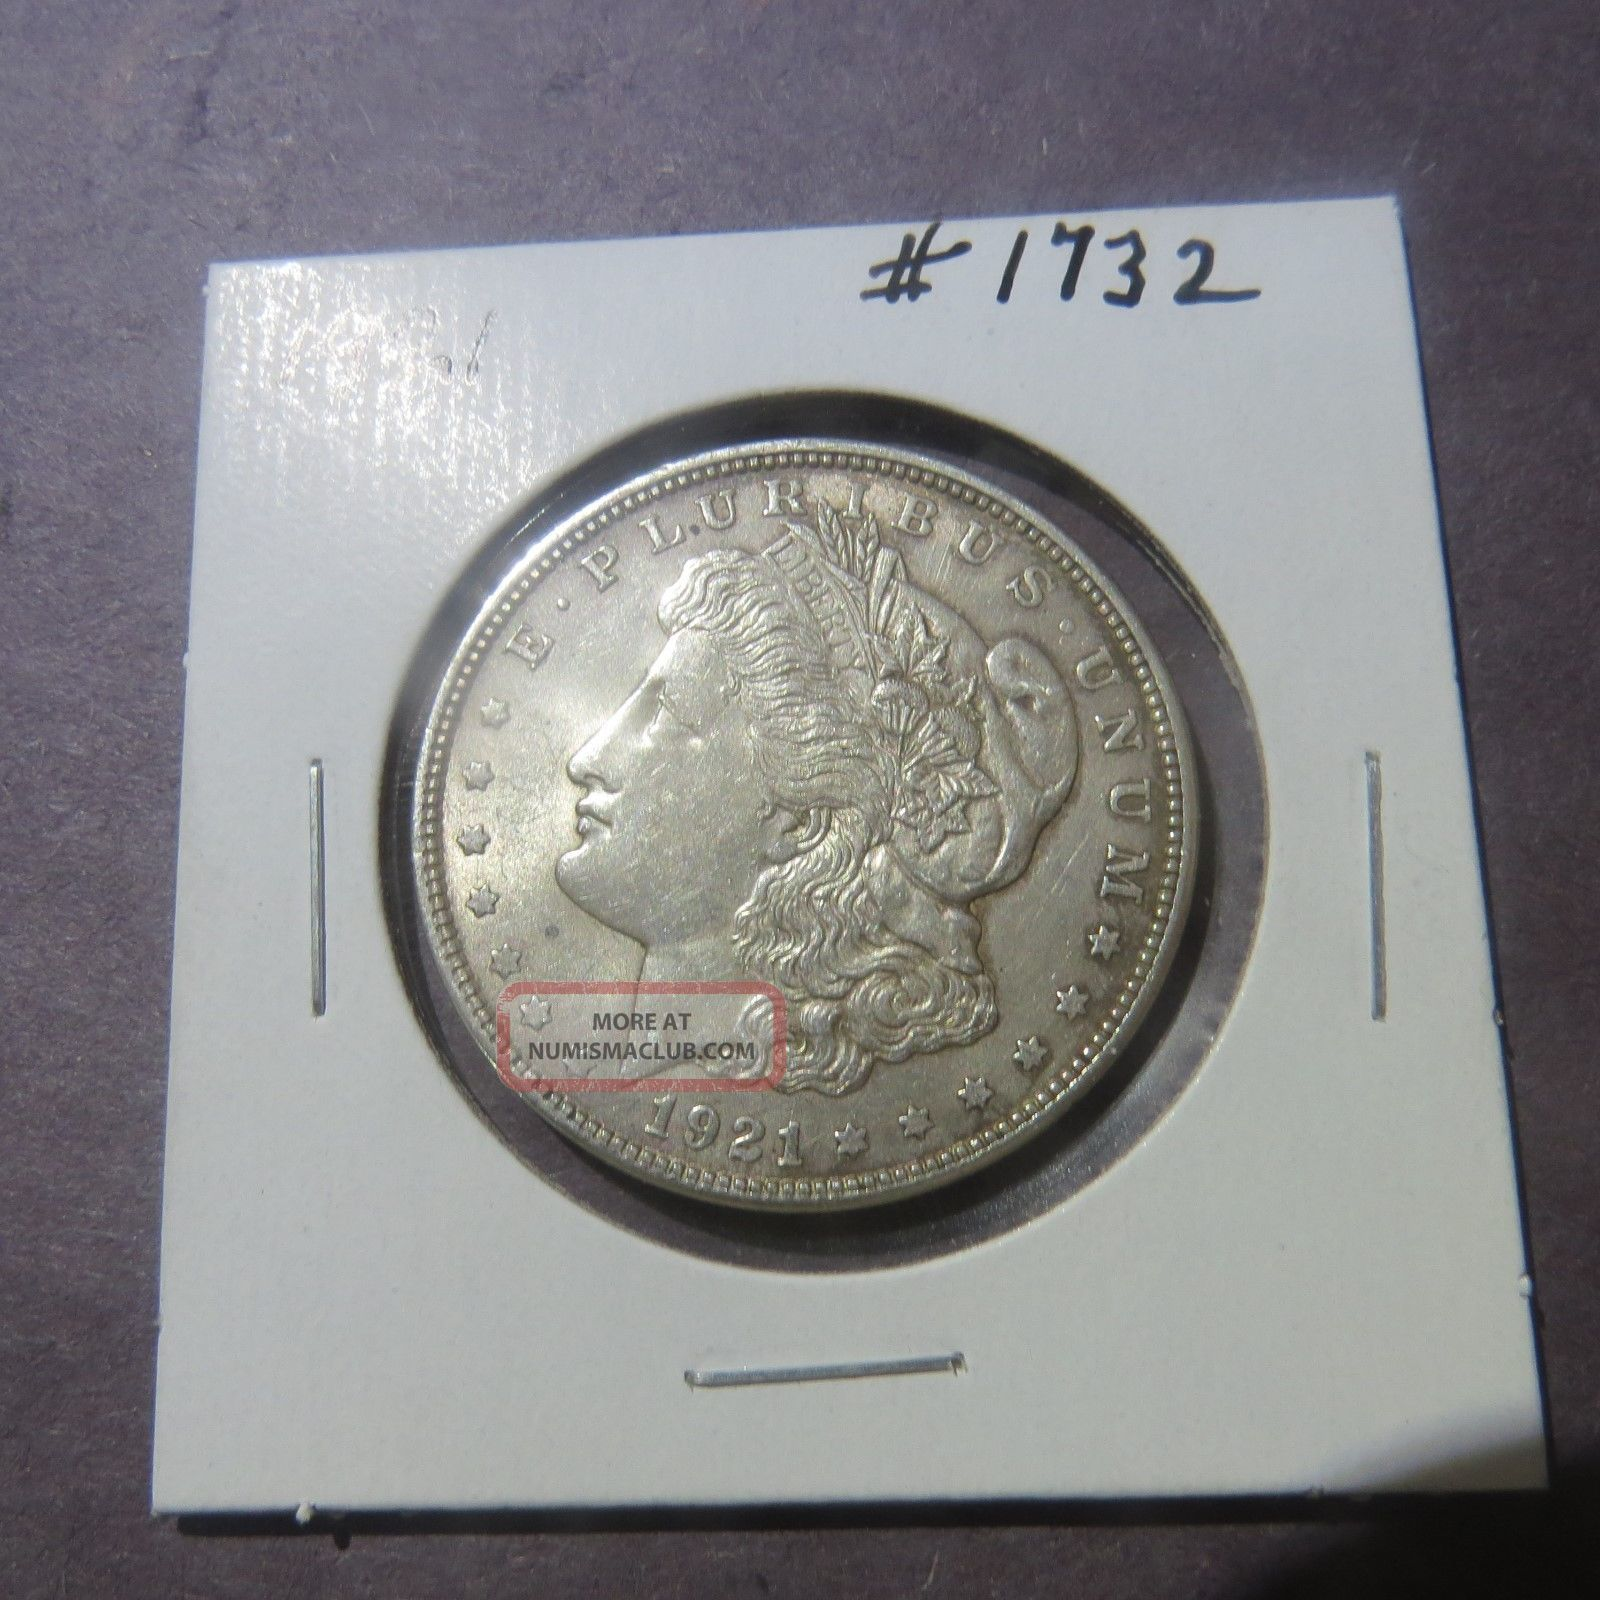 1921 $1 Morgan Silver Dollar 1732 Morgan (1878-1921) photo